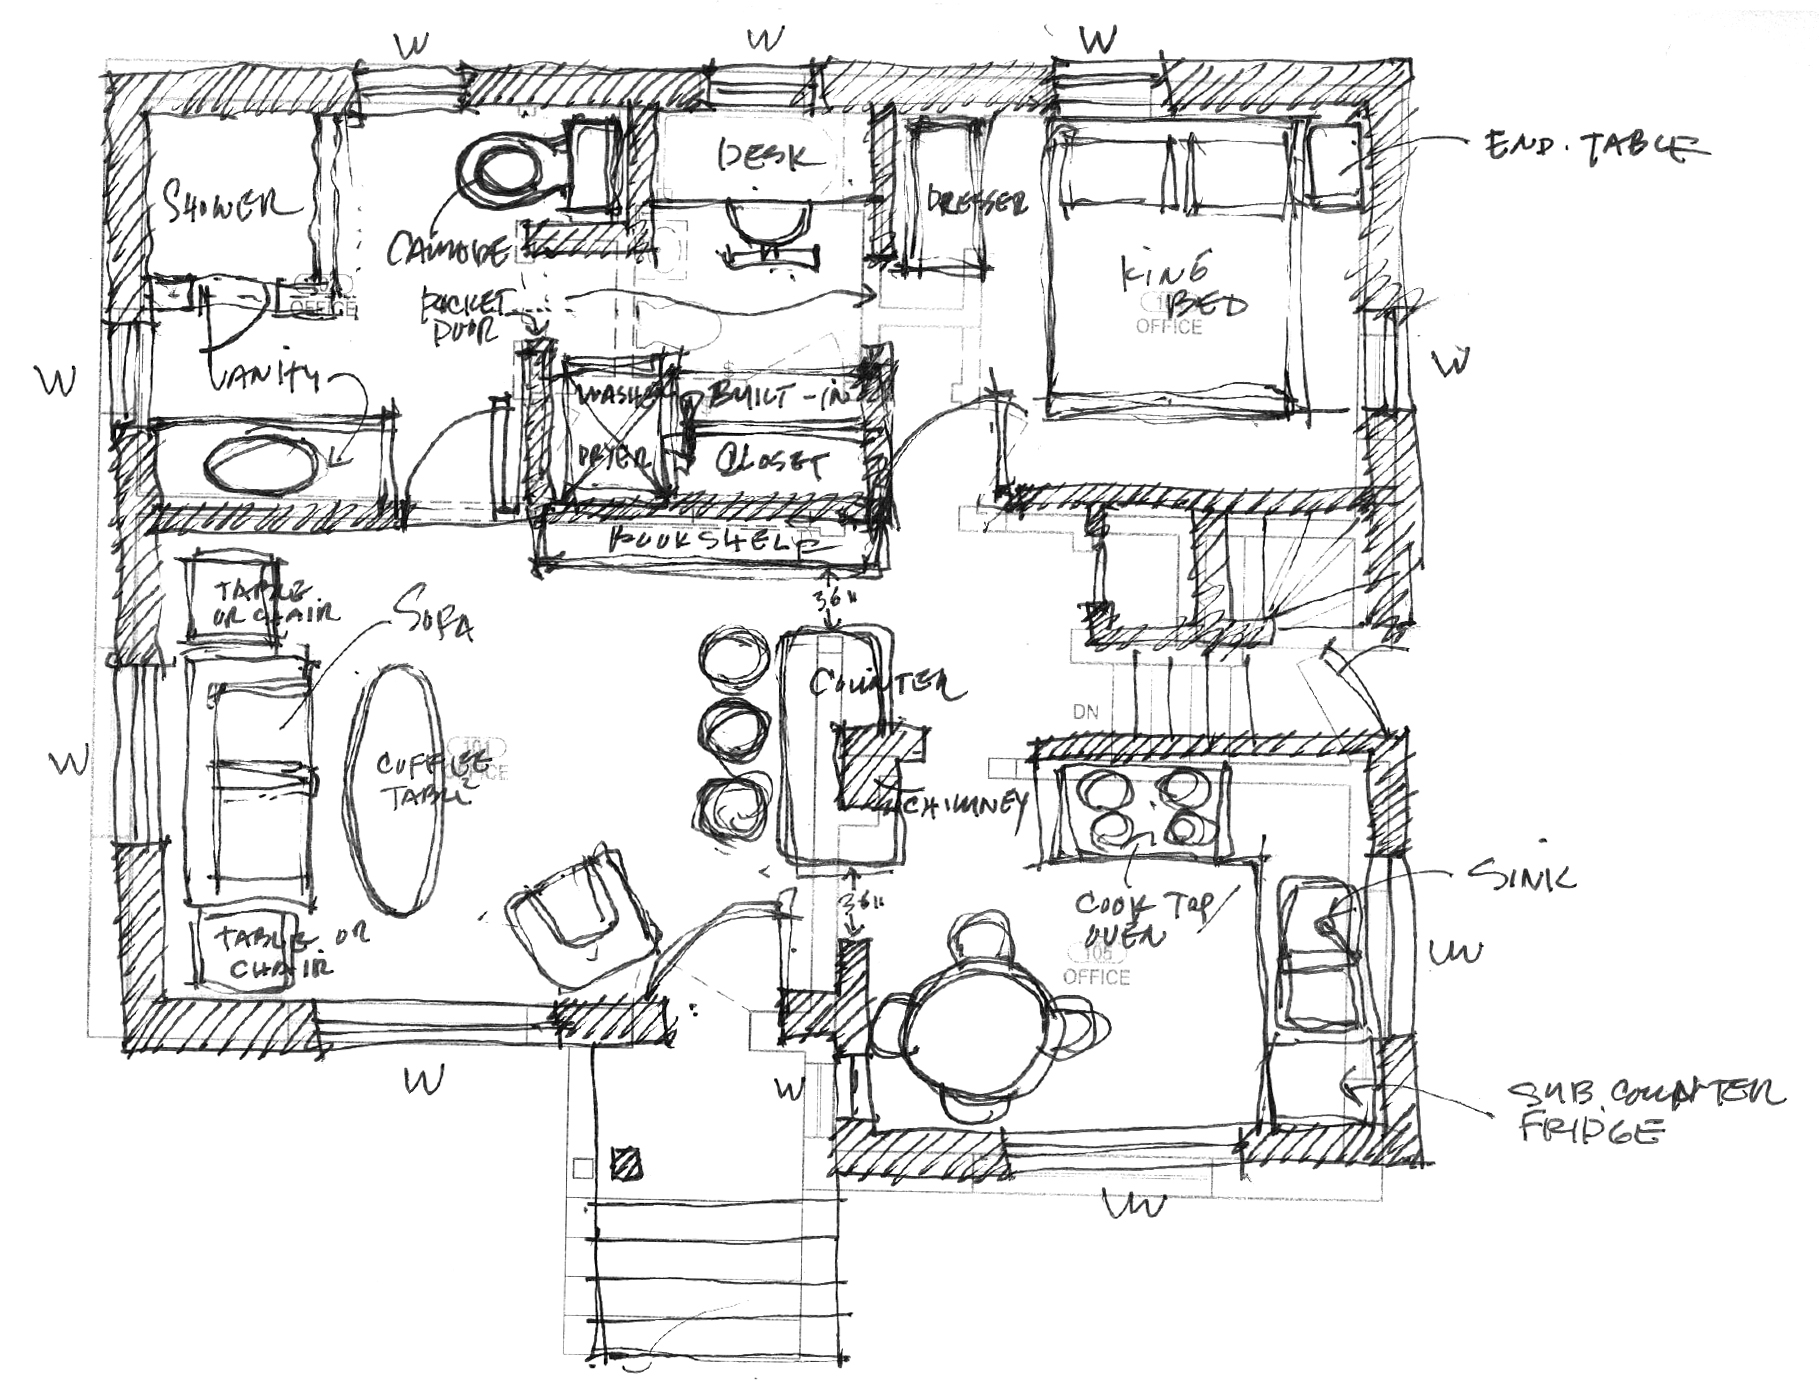 sketch of possible design for the home interior